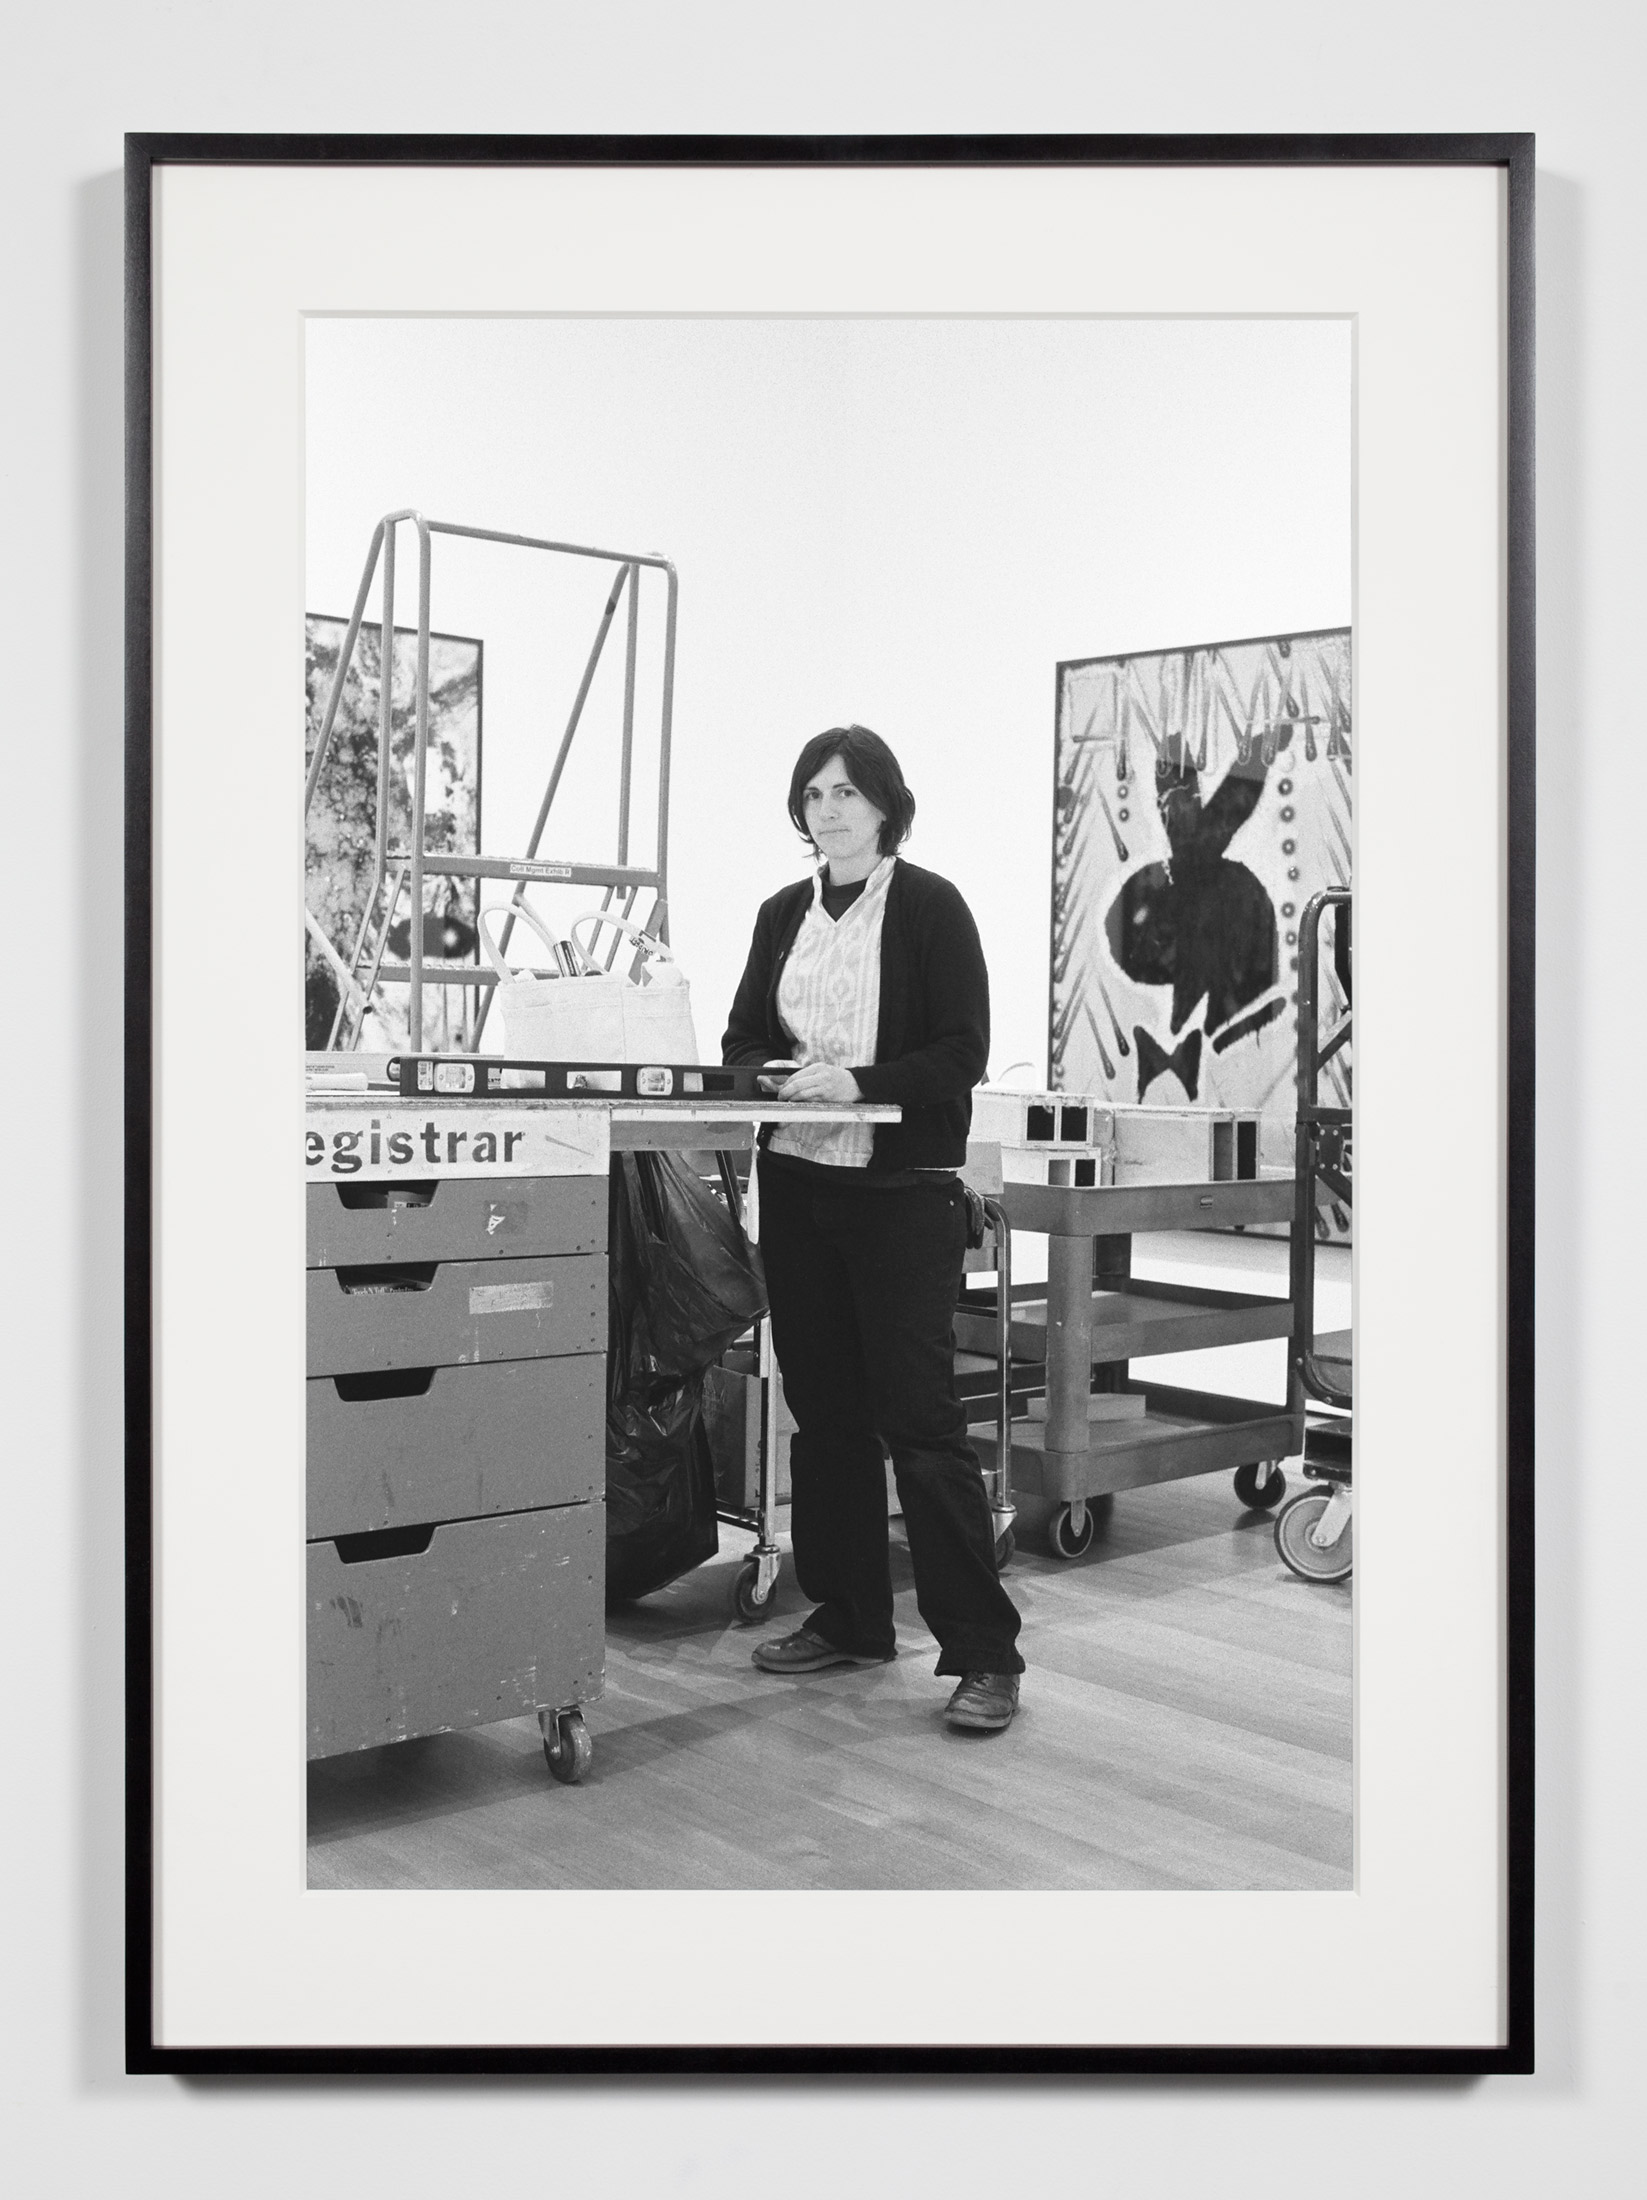 Museum Preparator, New York, New York, September 26, 2009    2011   Epson Ultrachrome K3 archival ink jet print on Hahnemühle Photo Rag paper  36 3/8 x 26 3/8 inches   Industrial Portraits, 2008–